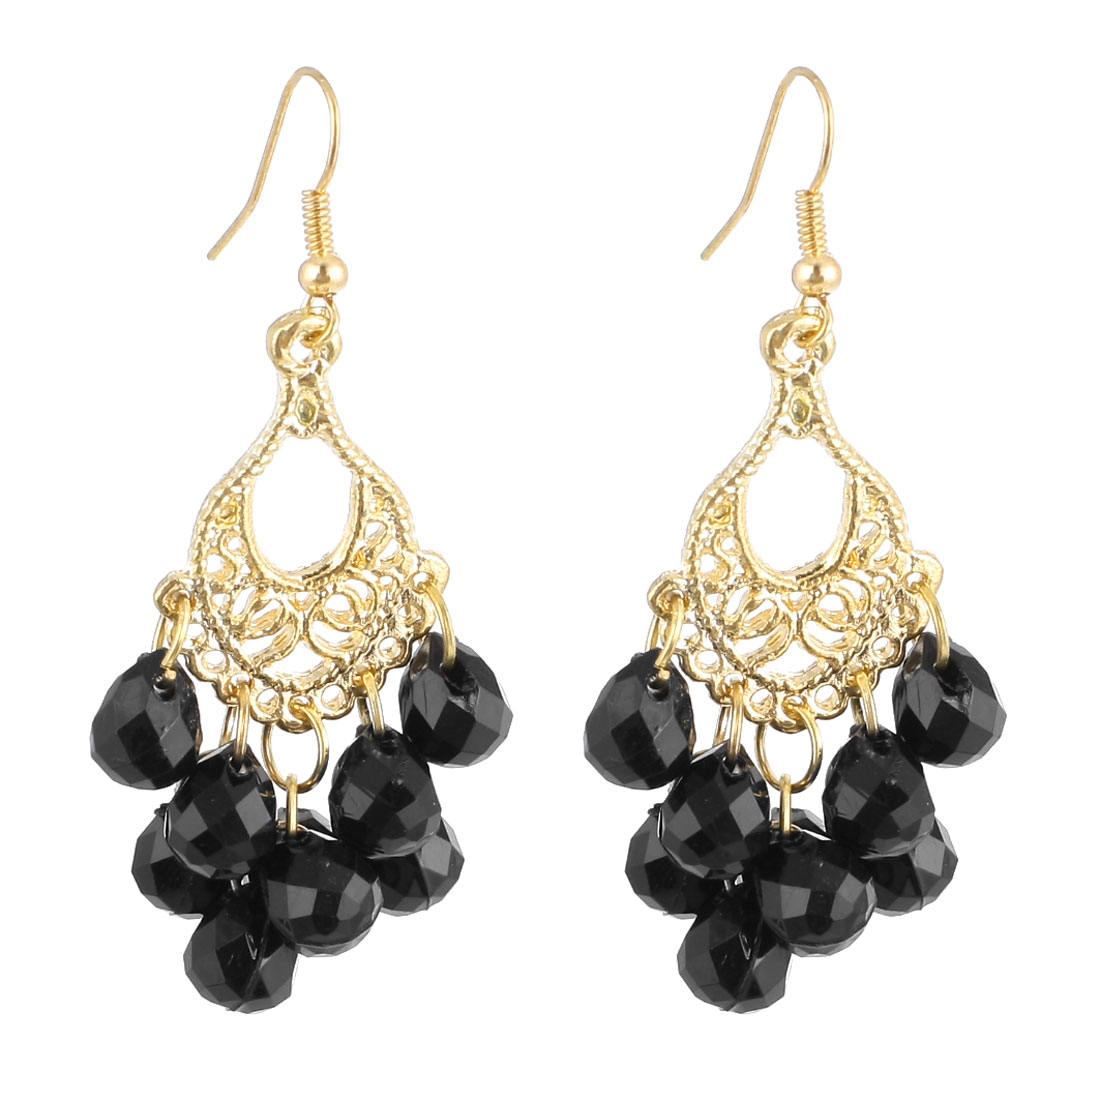 Lady Pair Black Gold Tone Plastic Beads Ornament Dangling Hook Earrings